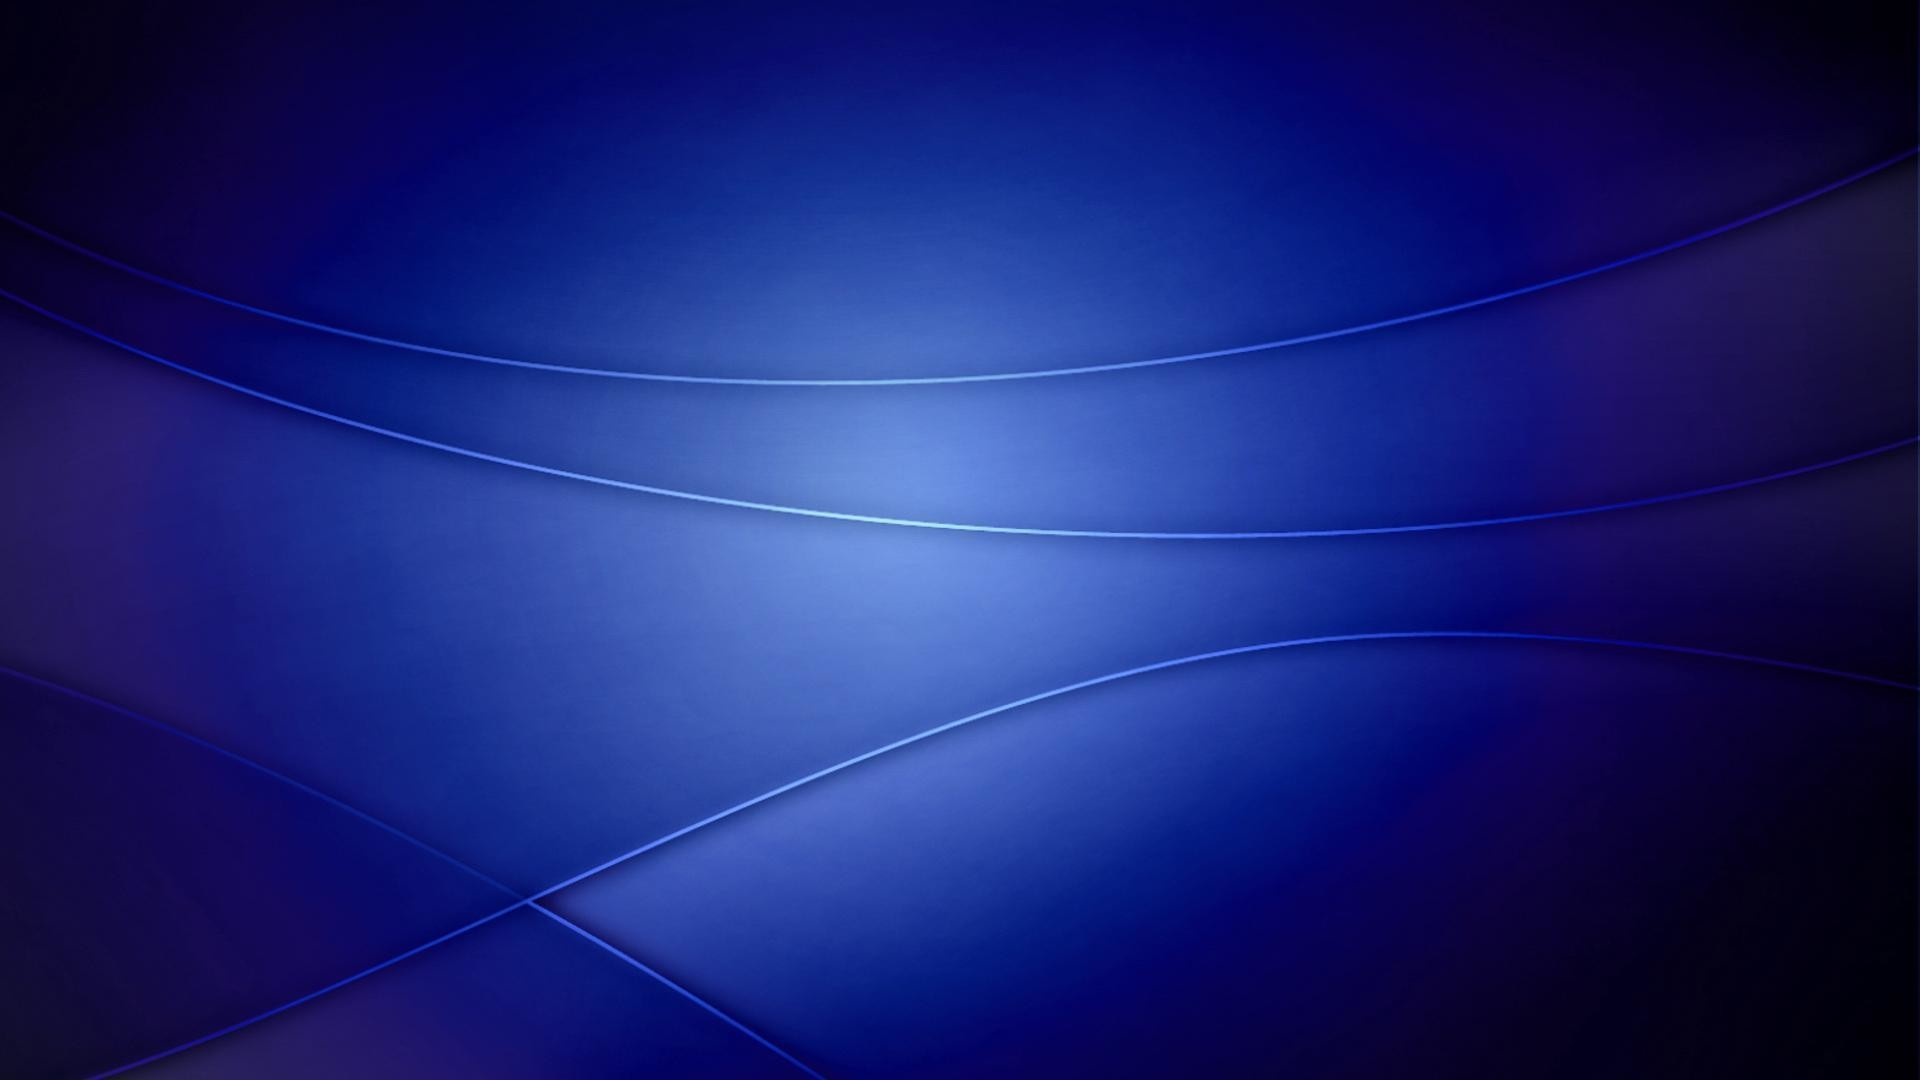 1920x1080 Deep Blue Background Wallpaper PX ~ Wallpaper Windows .